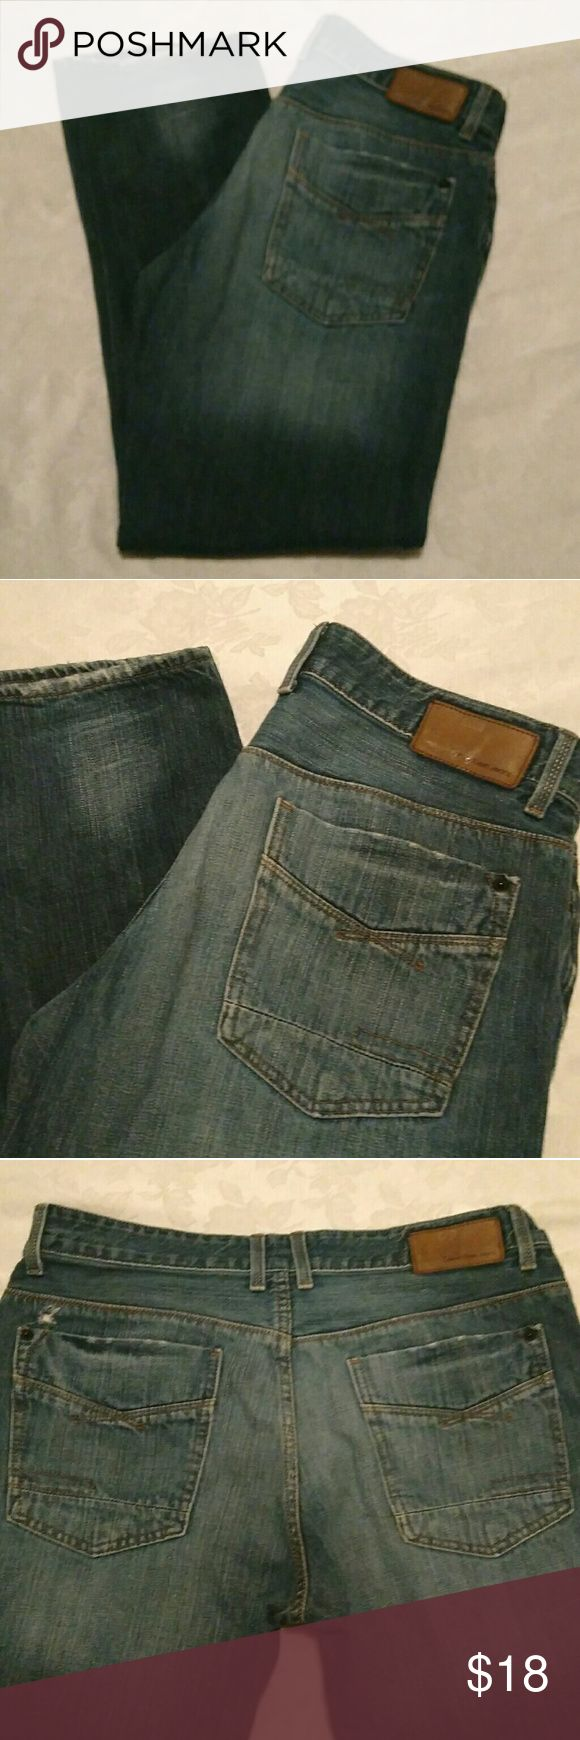 """Calvin Klein Blue Jeans 34 Button Fly Medium Dark Blue Denim Jean Calvin Klein Slim, Straight Leg Style Factory Distressed Look Button Fly Good Condition Some Wear on Bottom Hems Hole Above Left Back Pocket (Pictured) Size 34, 30"""" Inseam Thank You For Looking Calvin Klein Jeans Jeans Slim Straight"""